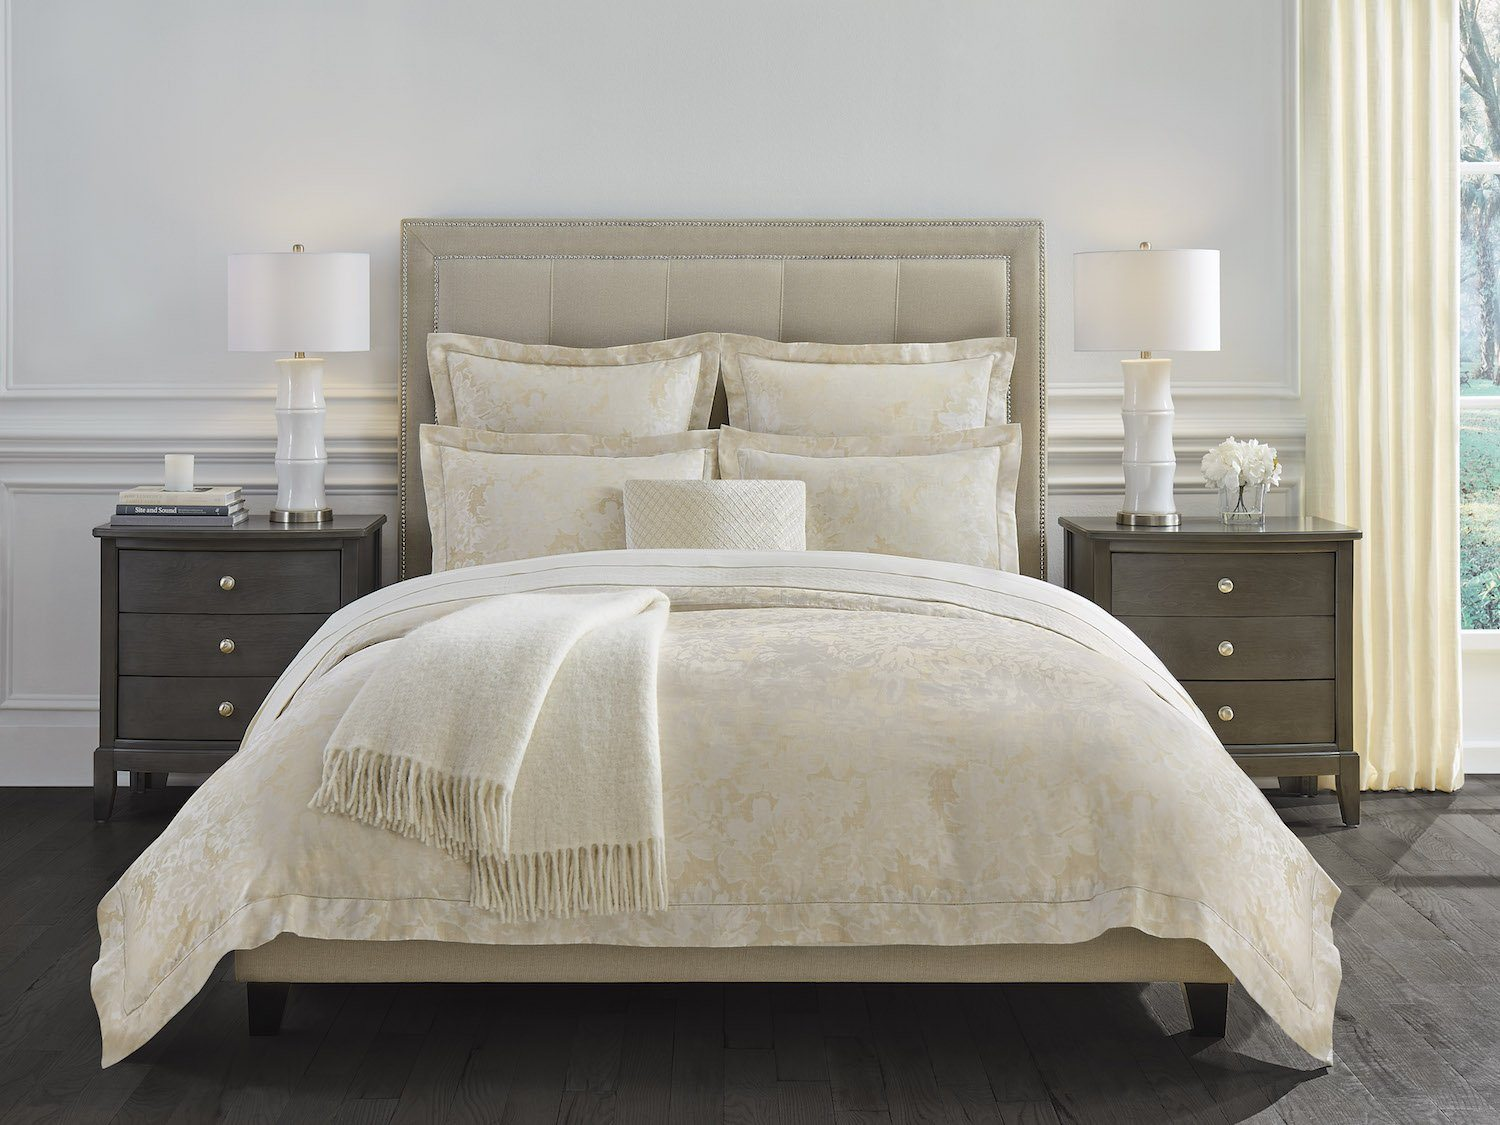 Petalo Gold Bedding by Sferra | Fig Fine Linens and Home